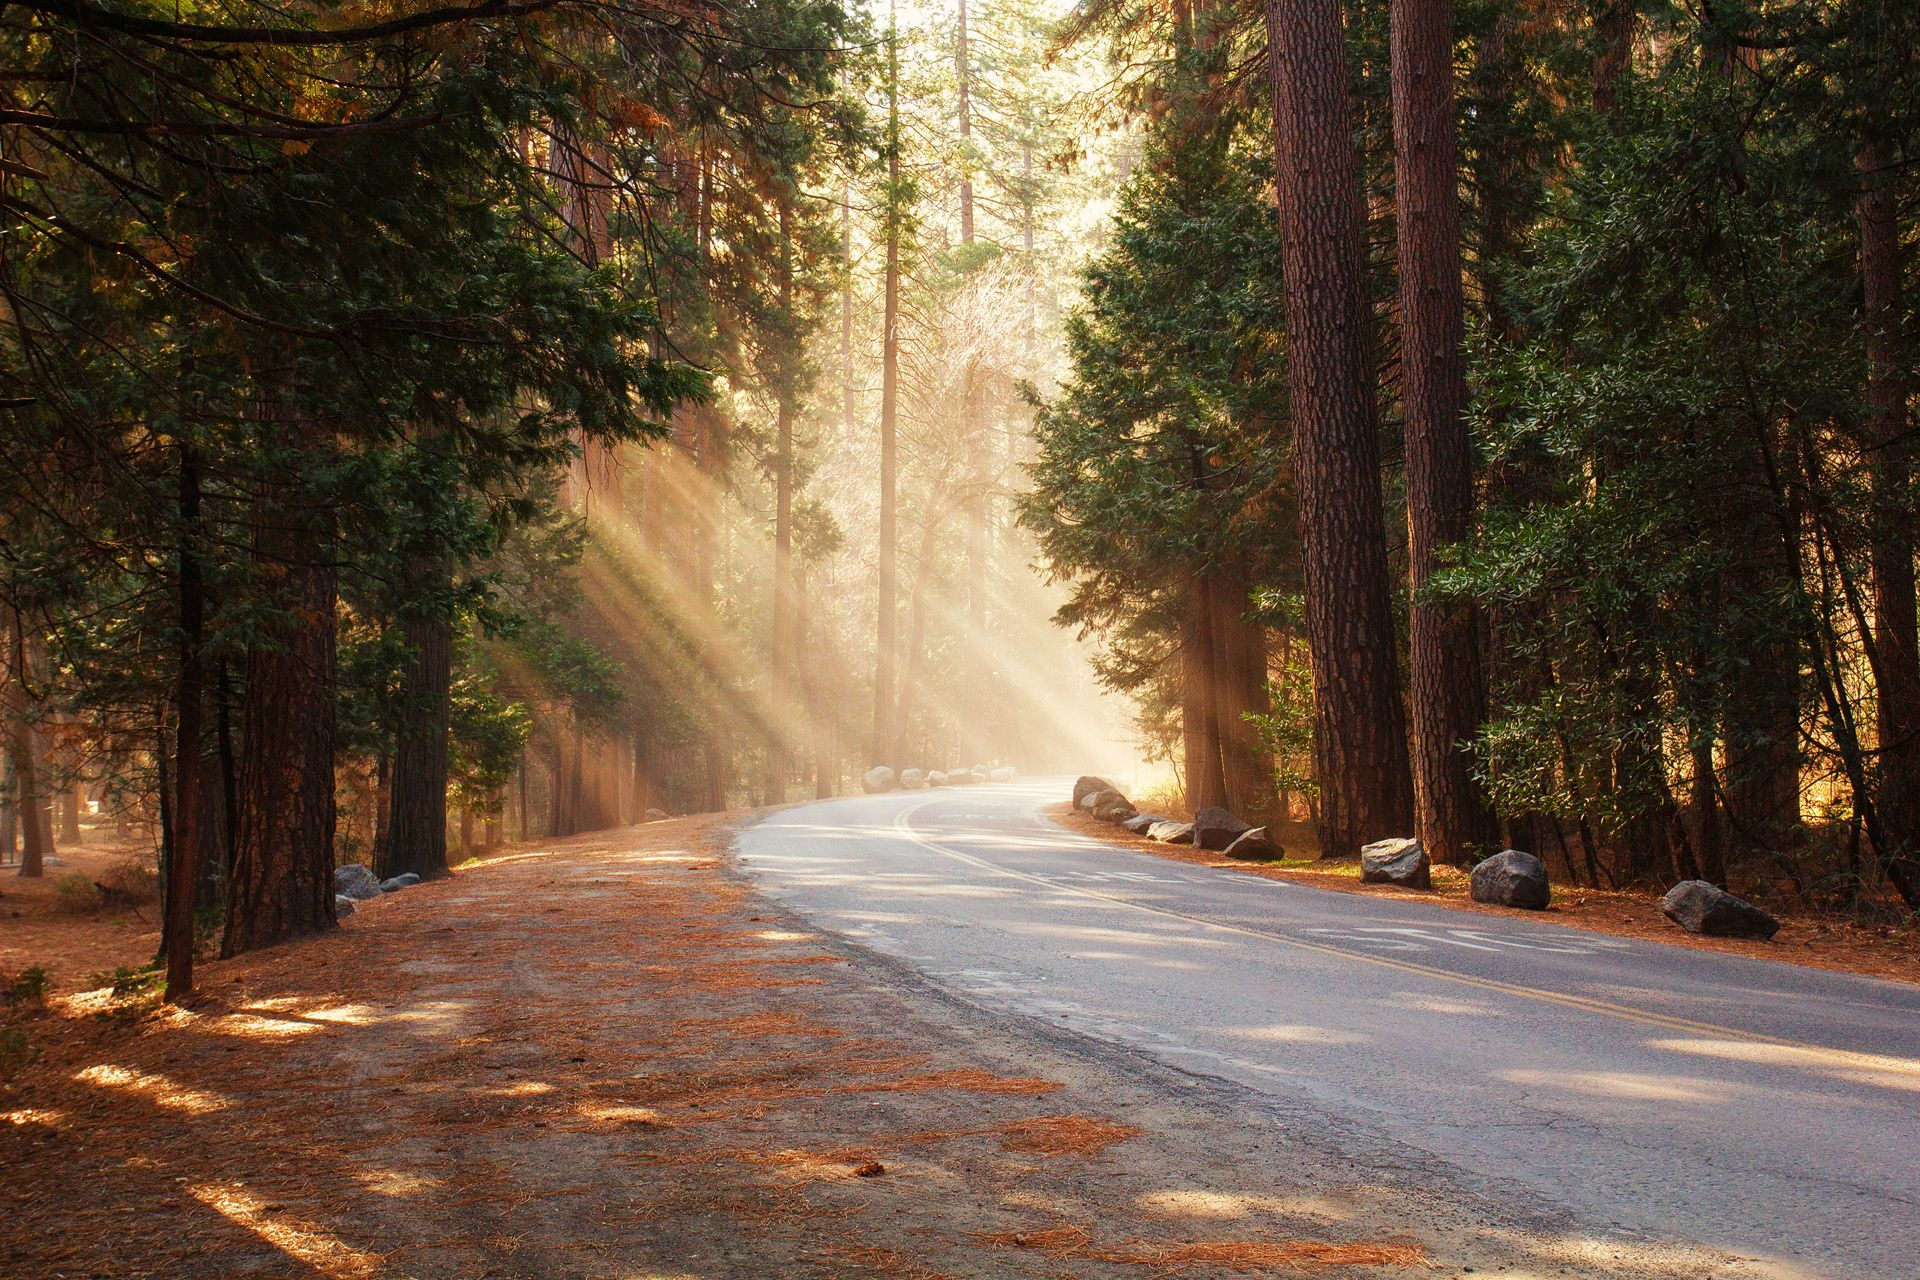 beams, light, sunrays, treee, forest, street, landscape, scenic, earthporn, landscape photography